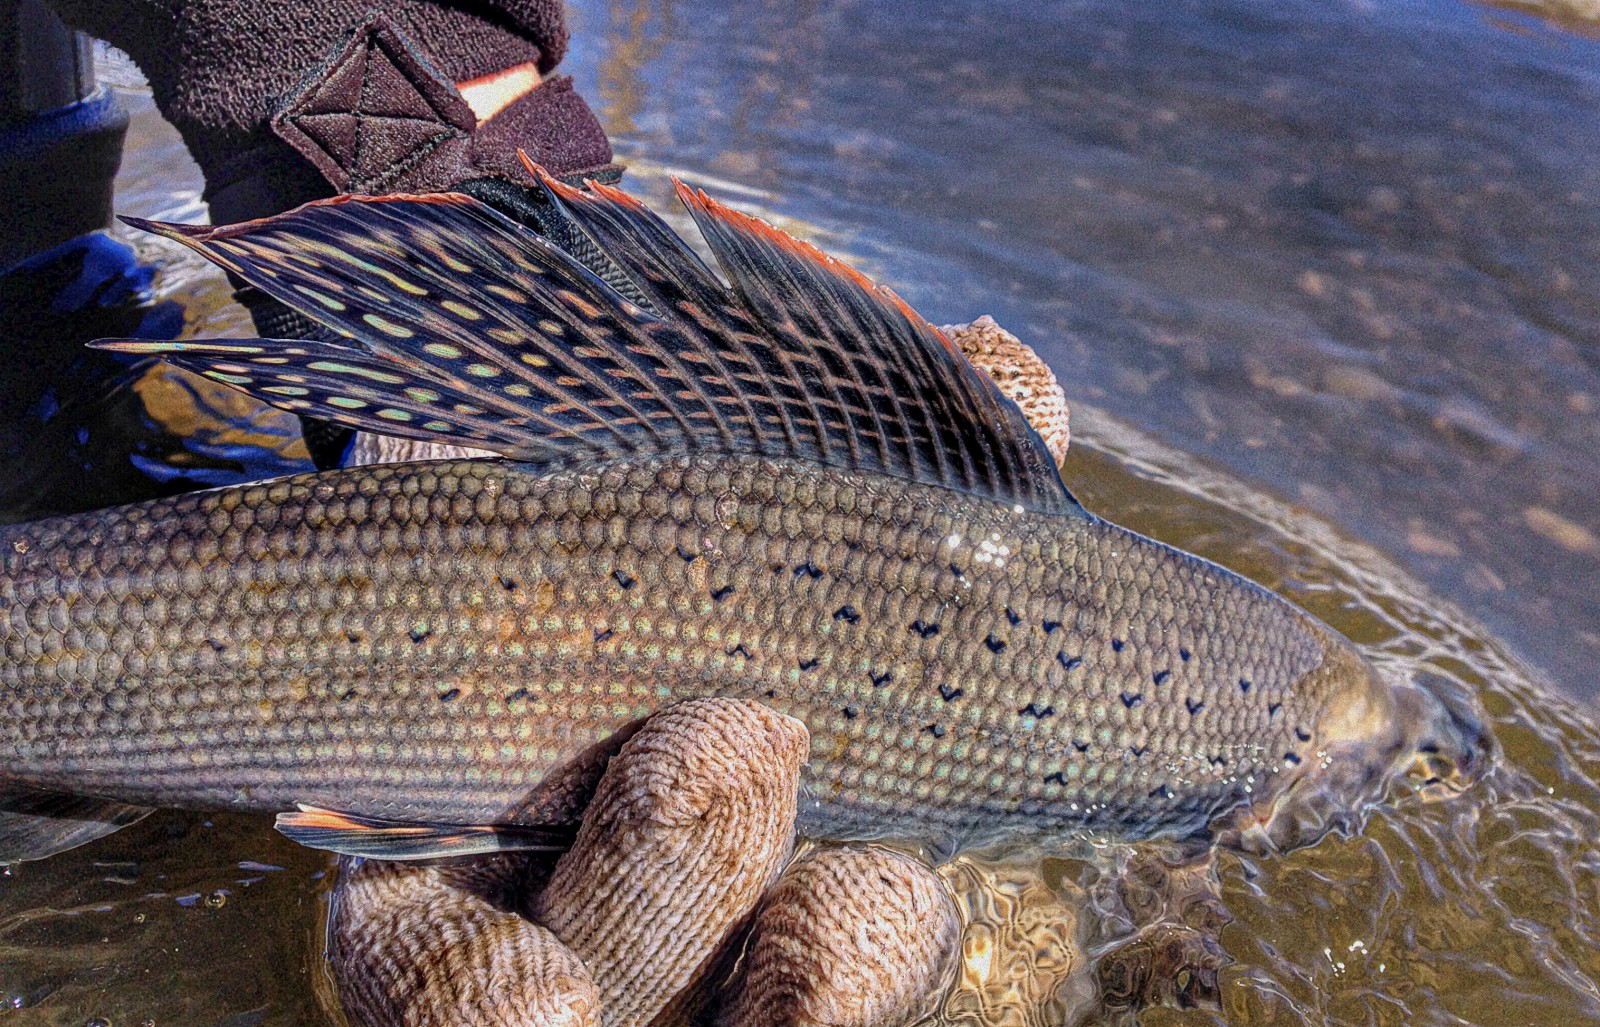 Arctic Grayling. Photo © Andrew Gilham/USFWS on Flickr through a Creative Commons license